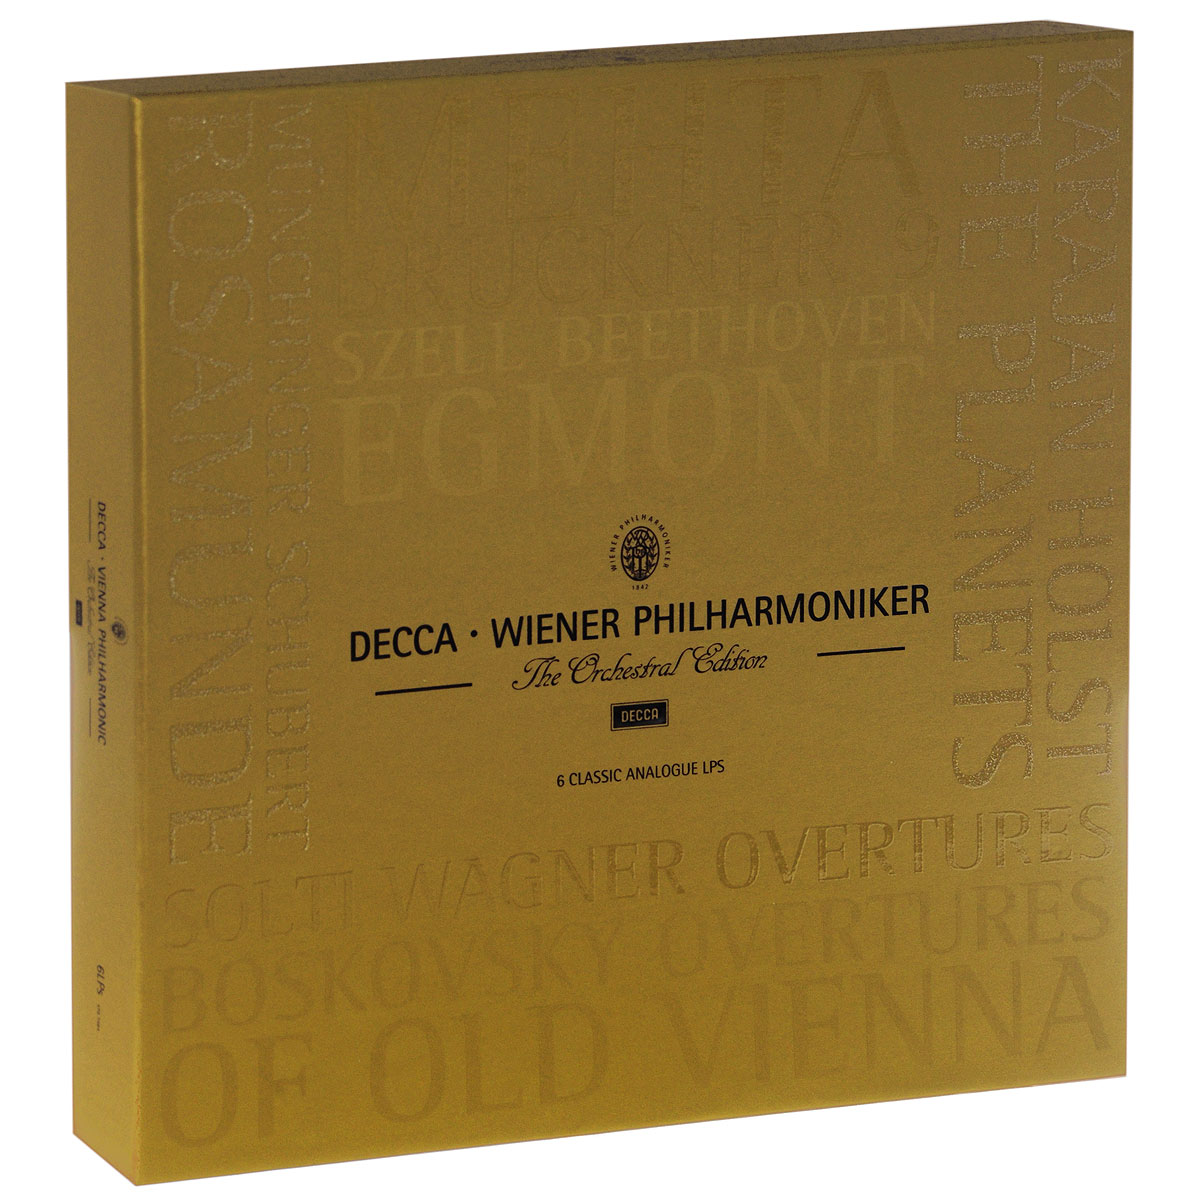 Норберт Балатш,Wiener Staatsopernchor,Yachmi Rohangiz,Вальтер Лехмайер,Пилар Лорингэр Decca. Wiener Philharmoniker. The Orchestral Edition (6 LP) дутики der spur der spur de034amde817